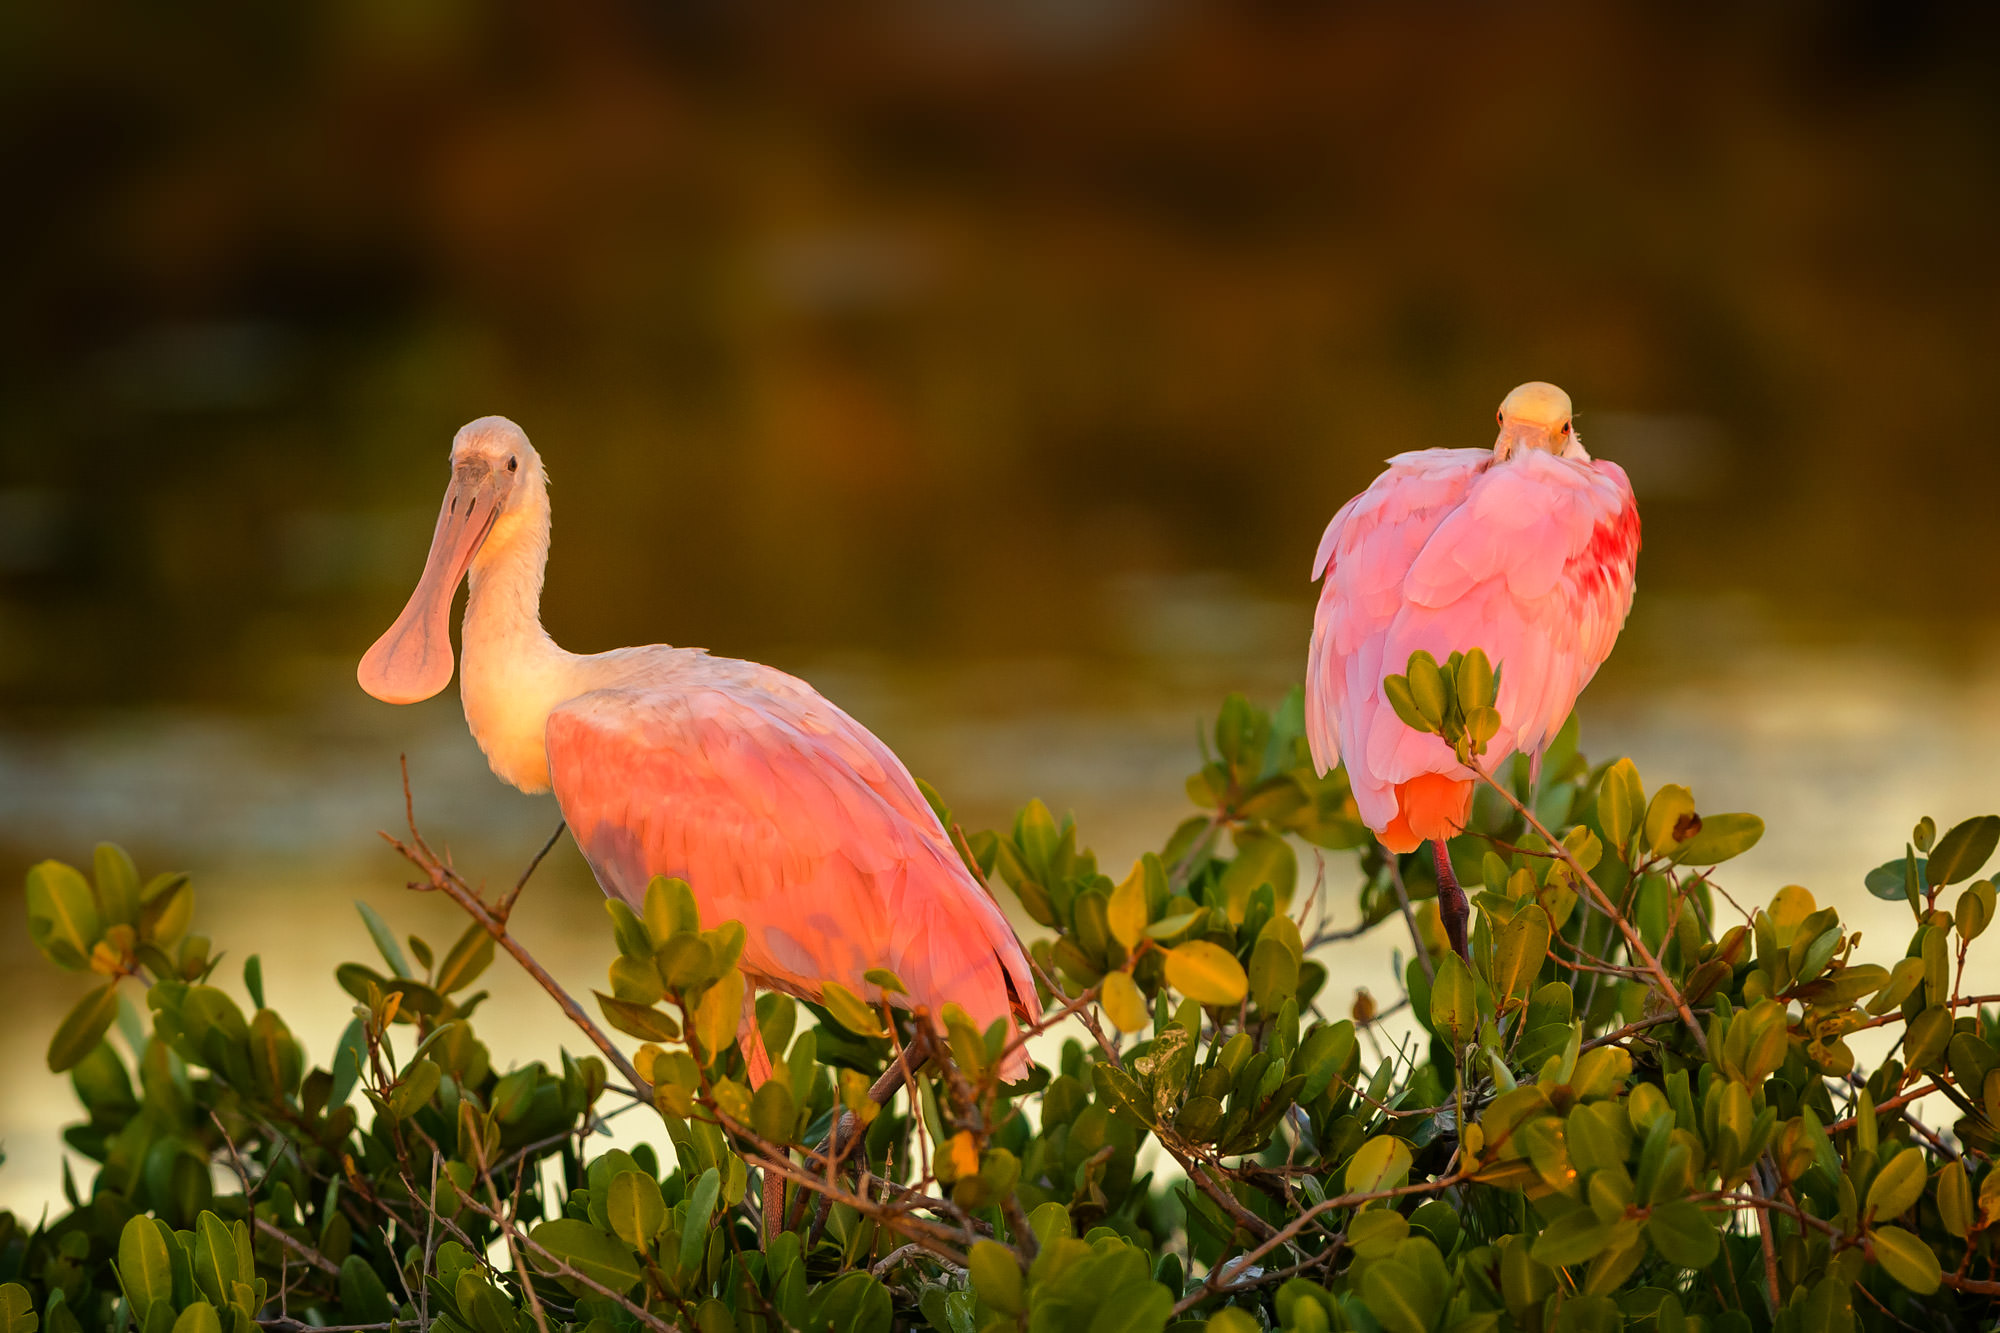 Roseate Spoonbill Fine Art Photography A Limited Edition photograph of two Roseate Spoonbills perched in mangroves in sunset...